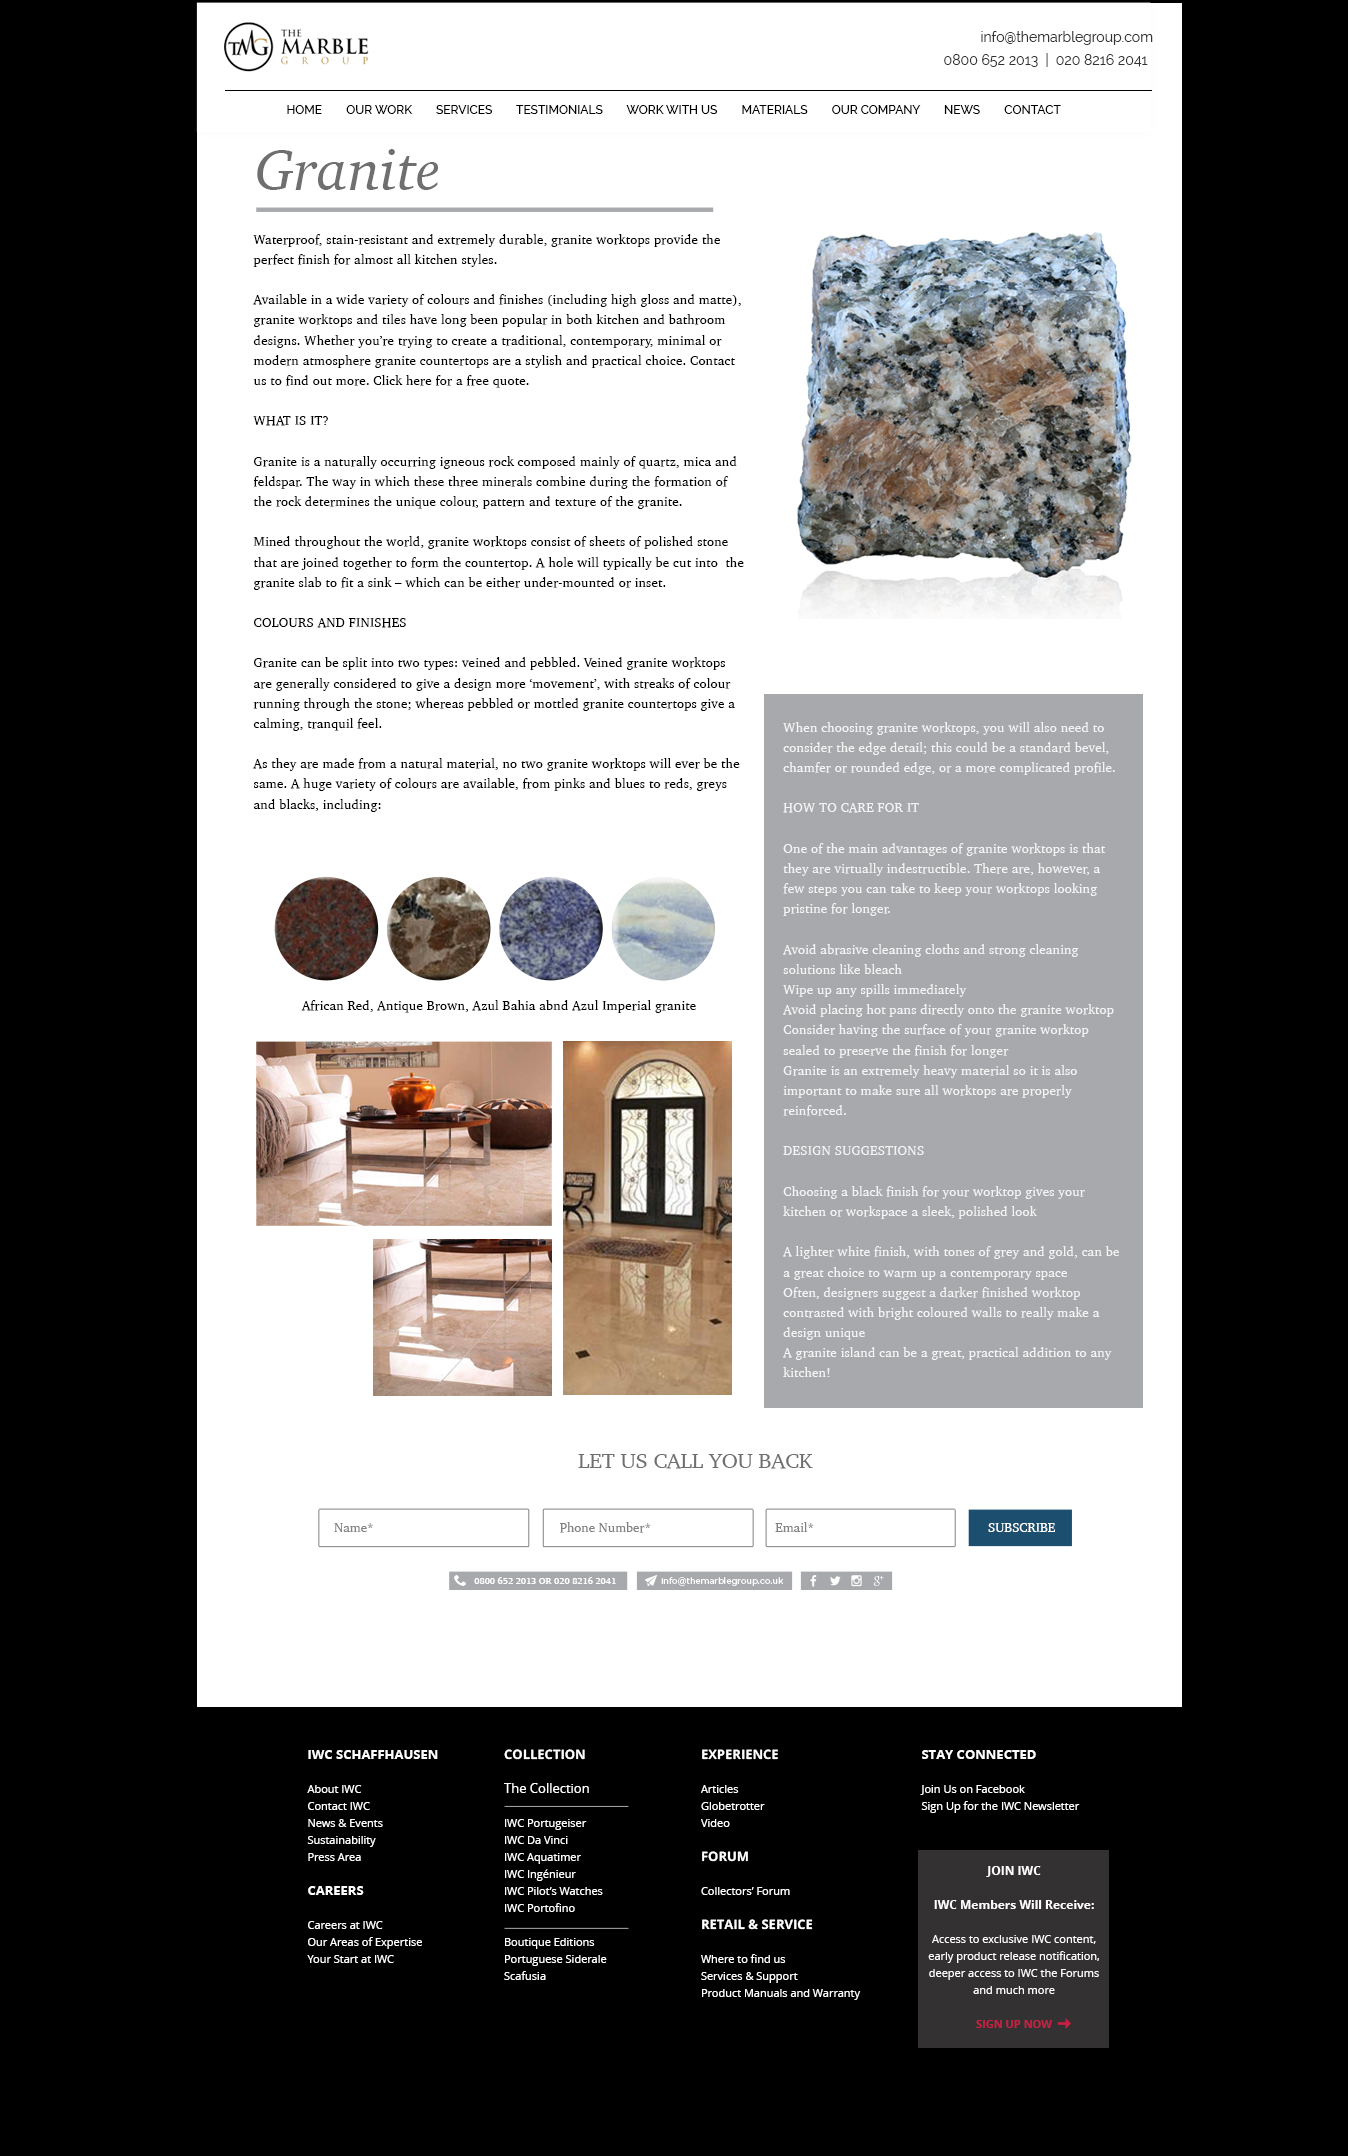 marble group materials page design